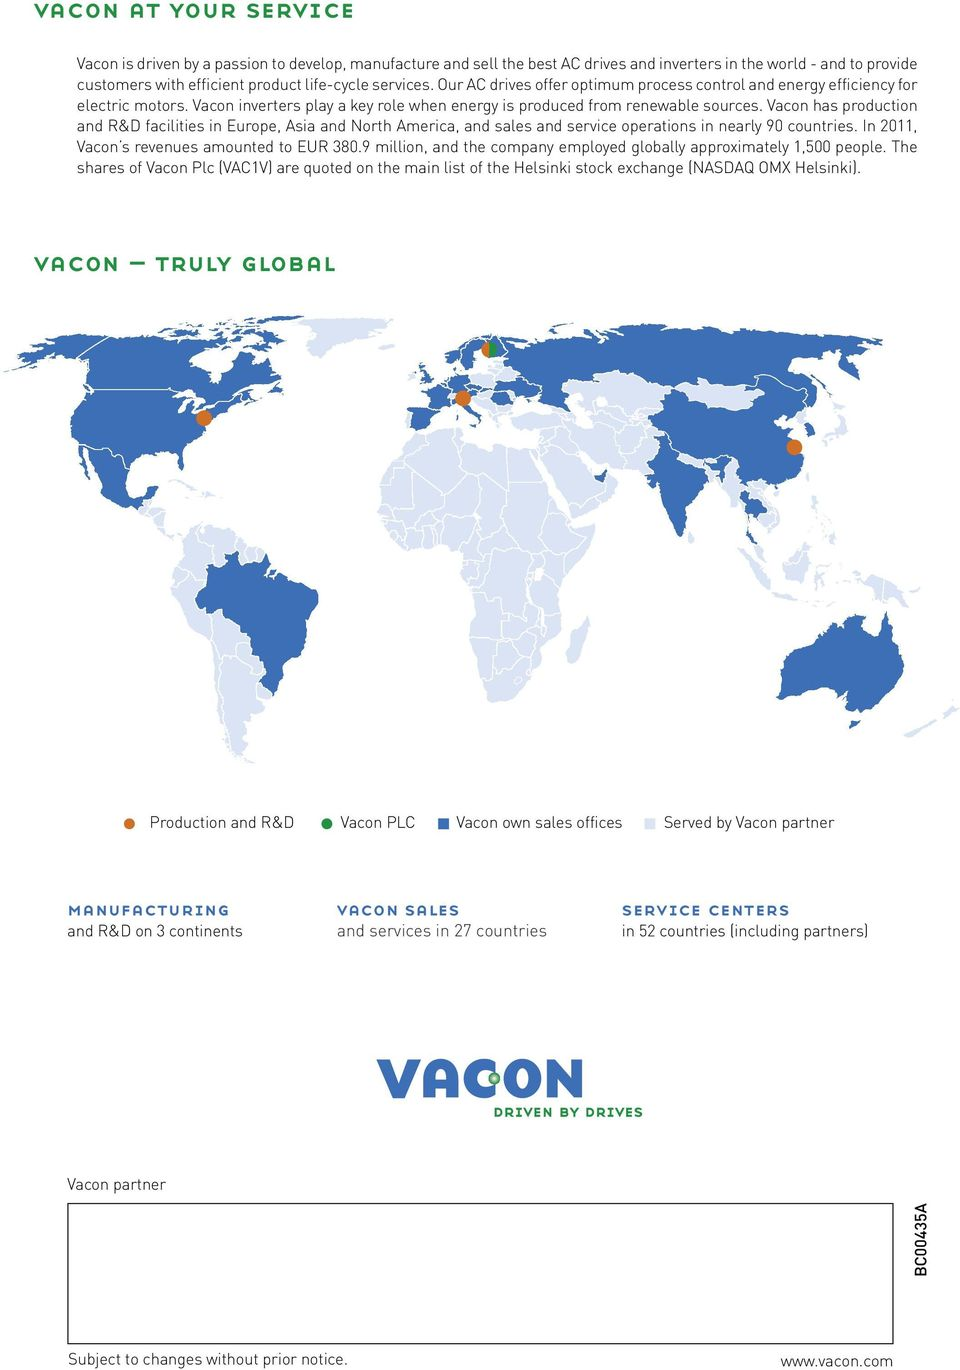 Vacon has production and R&D facilities in Europe, Asia and North America, and sales and service operations in nearly 90 countries. In 2011, Vacon s revenues amounted to EUR 380.